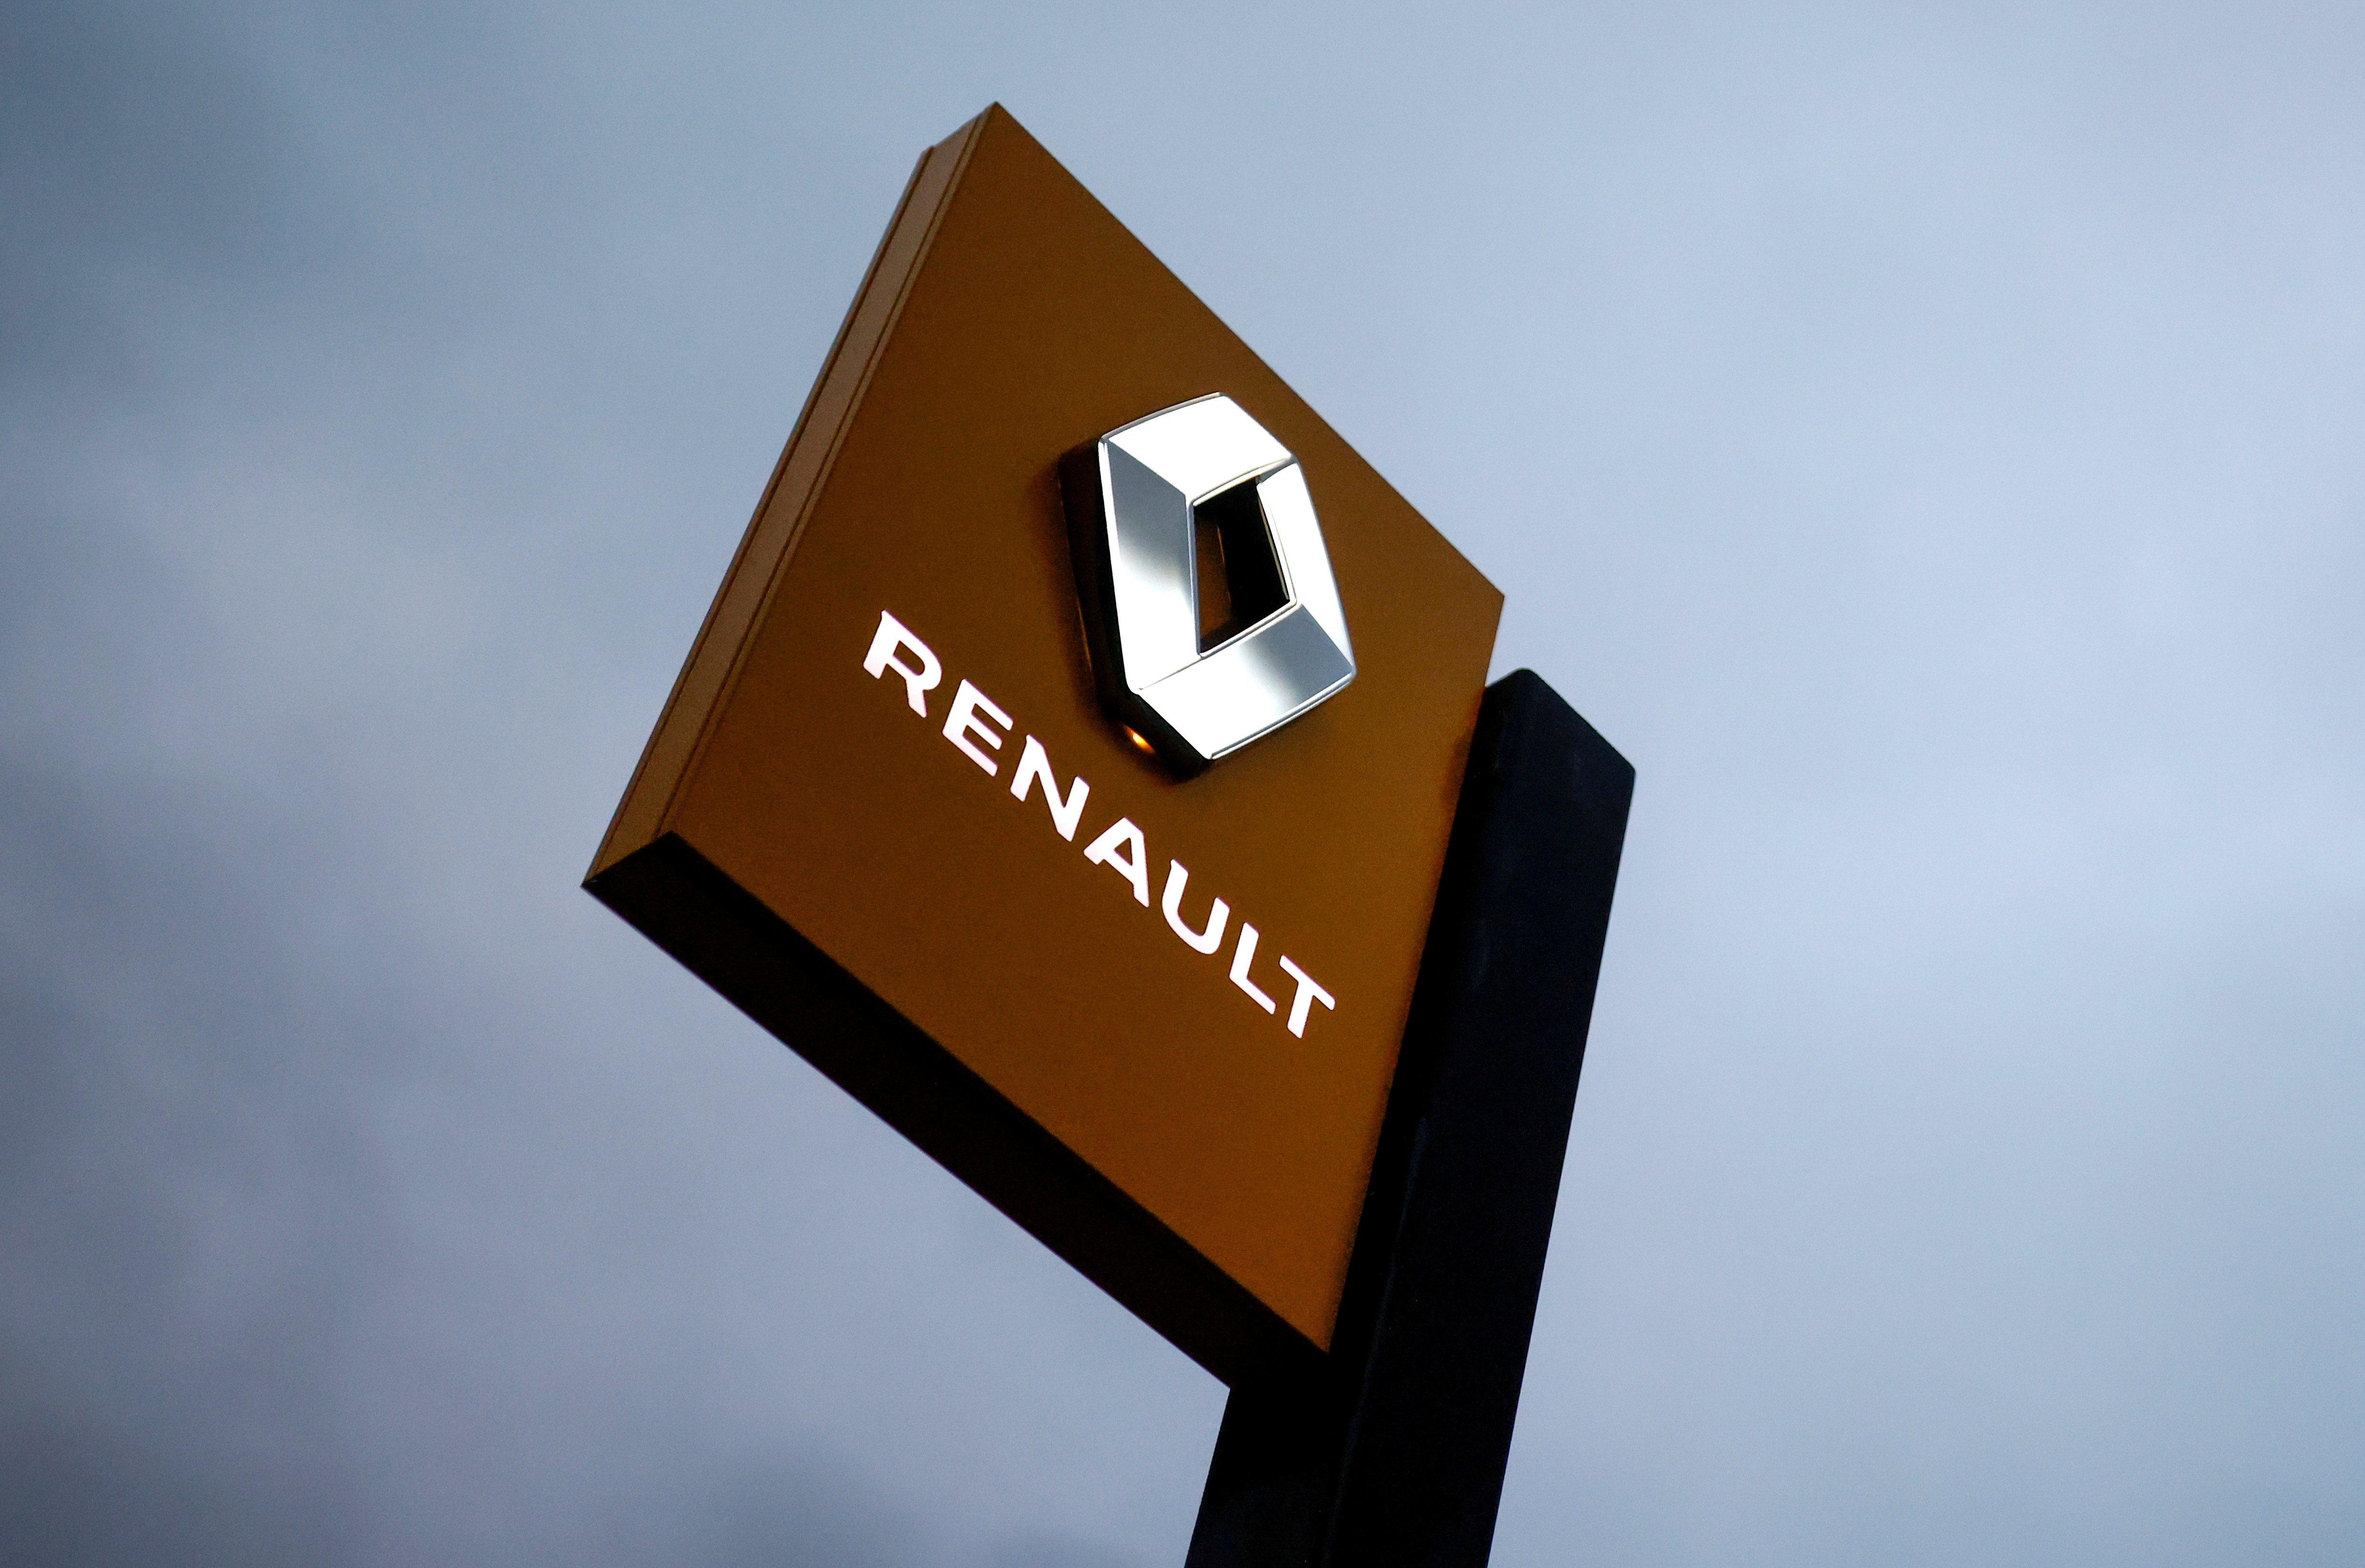 The logo of carmaker Renault is pictured at a dealership in Vertou, near Nantes, France, January 13, 2021. REUTERS/Stephane Mahe/File Photo